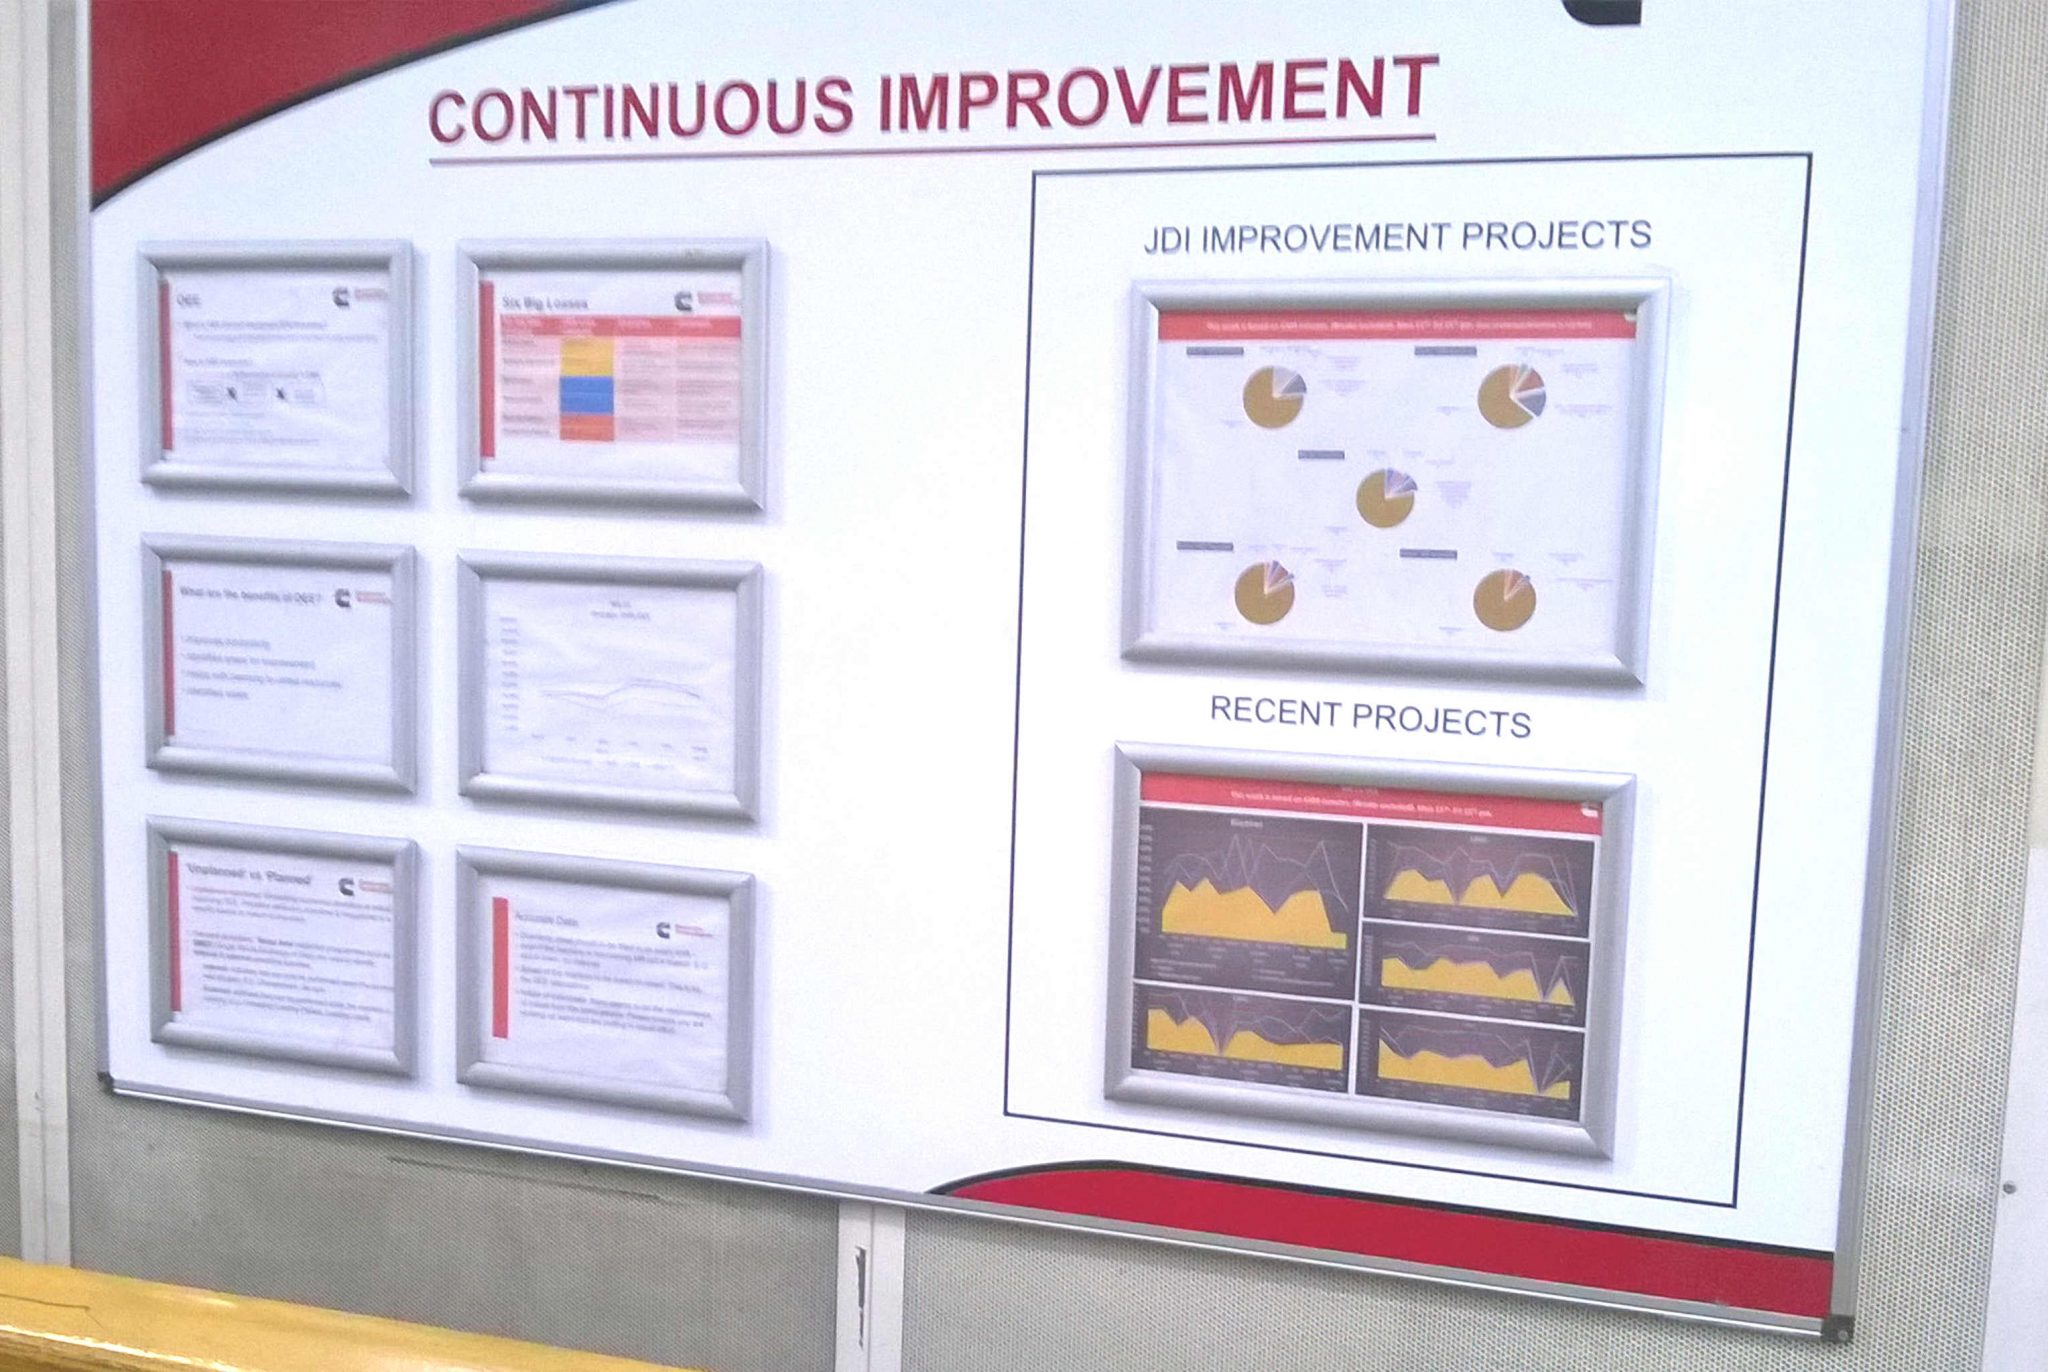 Continuous improvement board